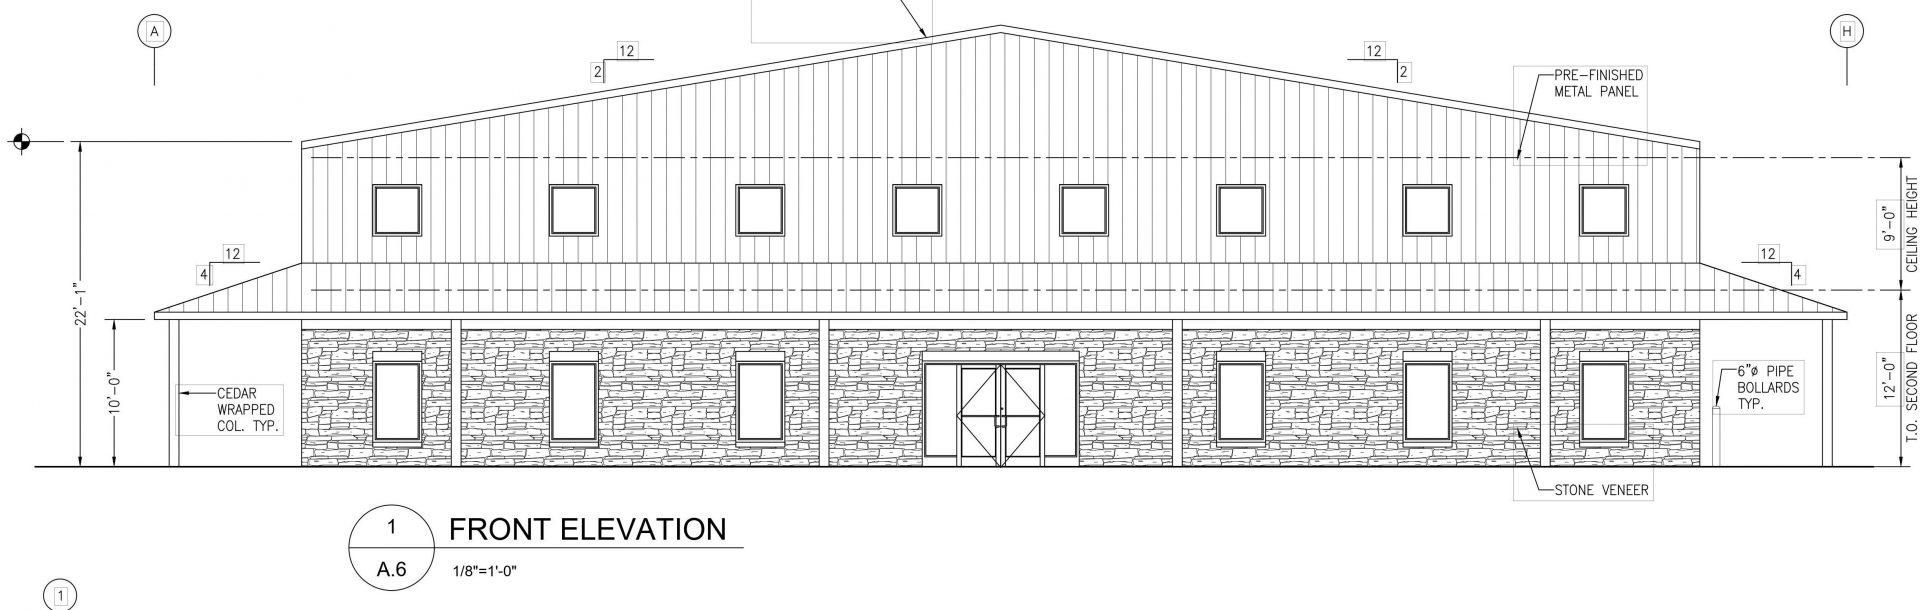 Design Underway for New UMA Geotechnical Headquarters Featured Image